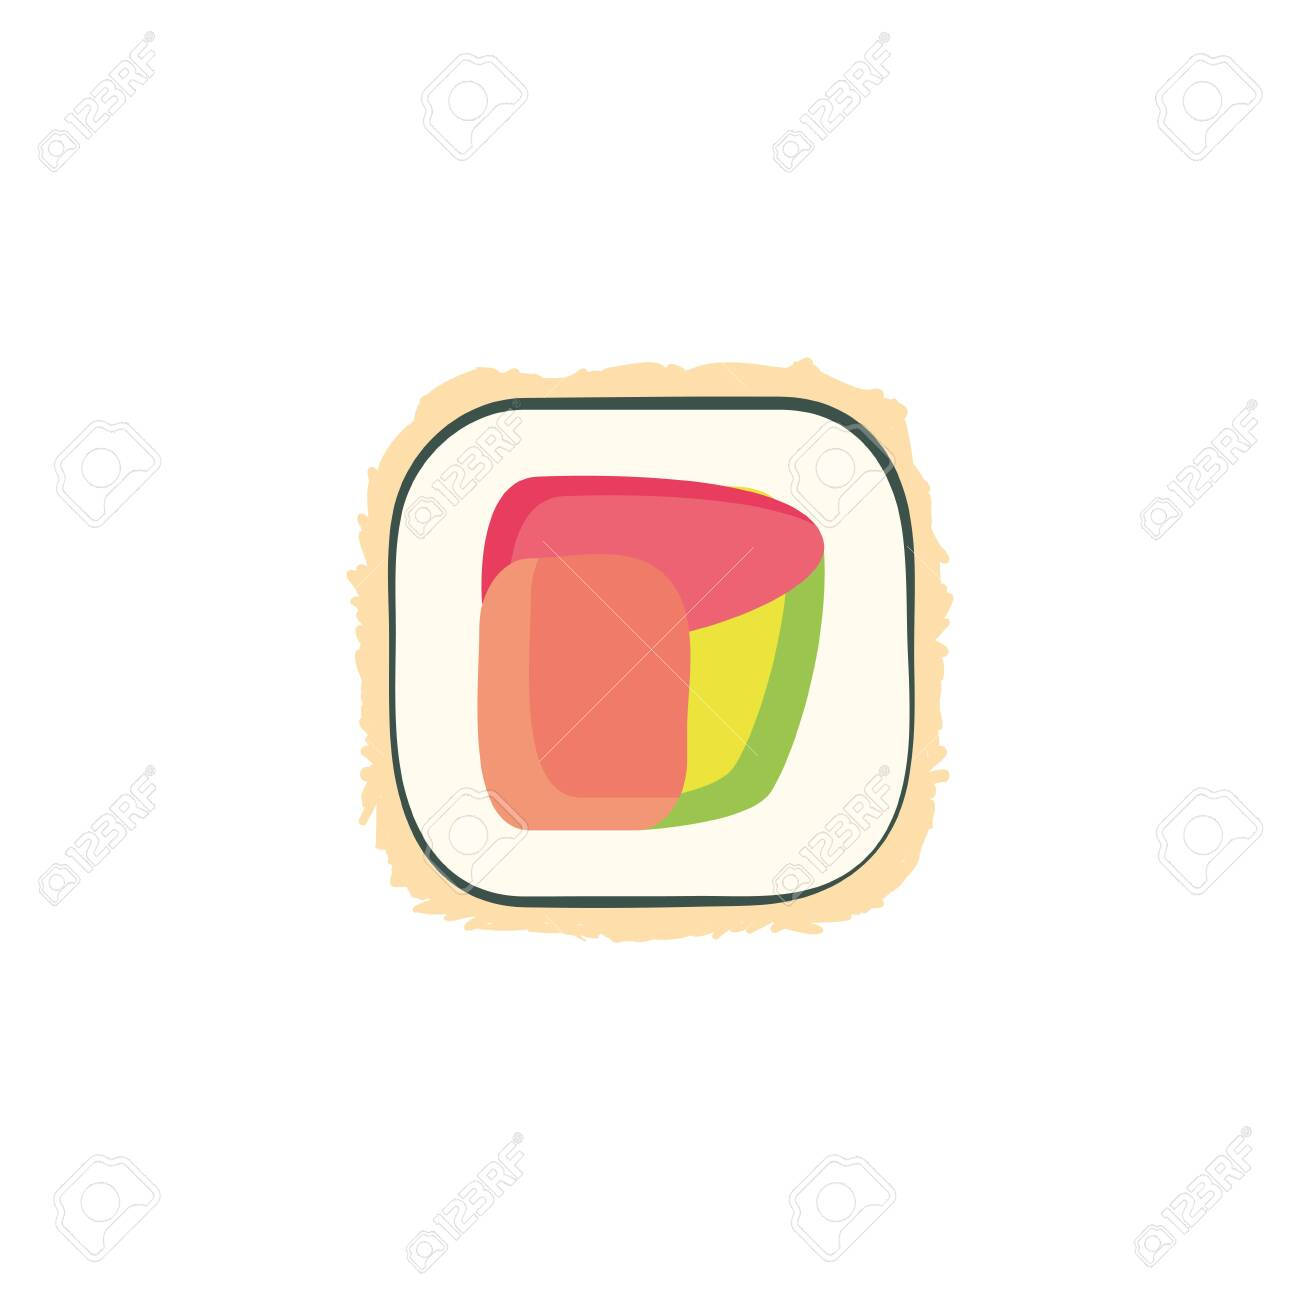 sushi icon design, Eat food restaurant menu dinner lunch cooking and meal theme Vector illustration - 141756300